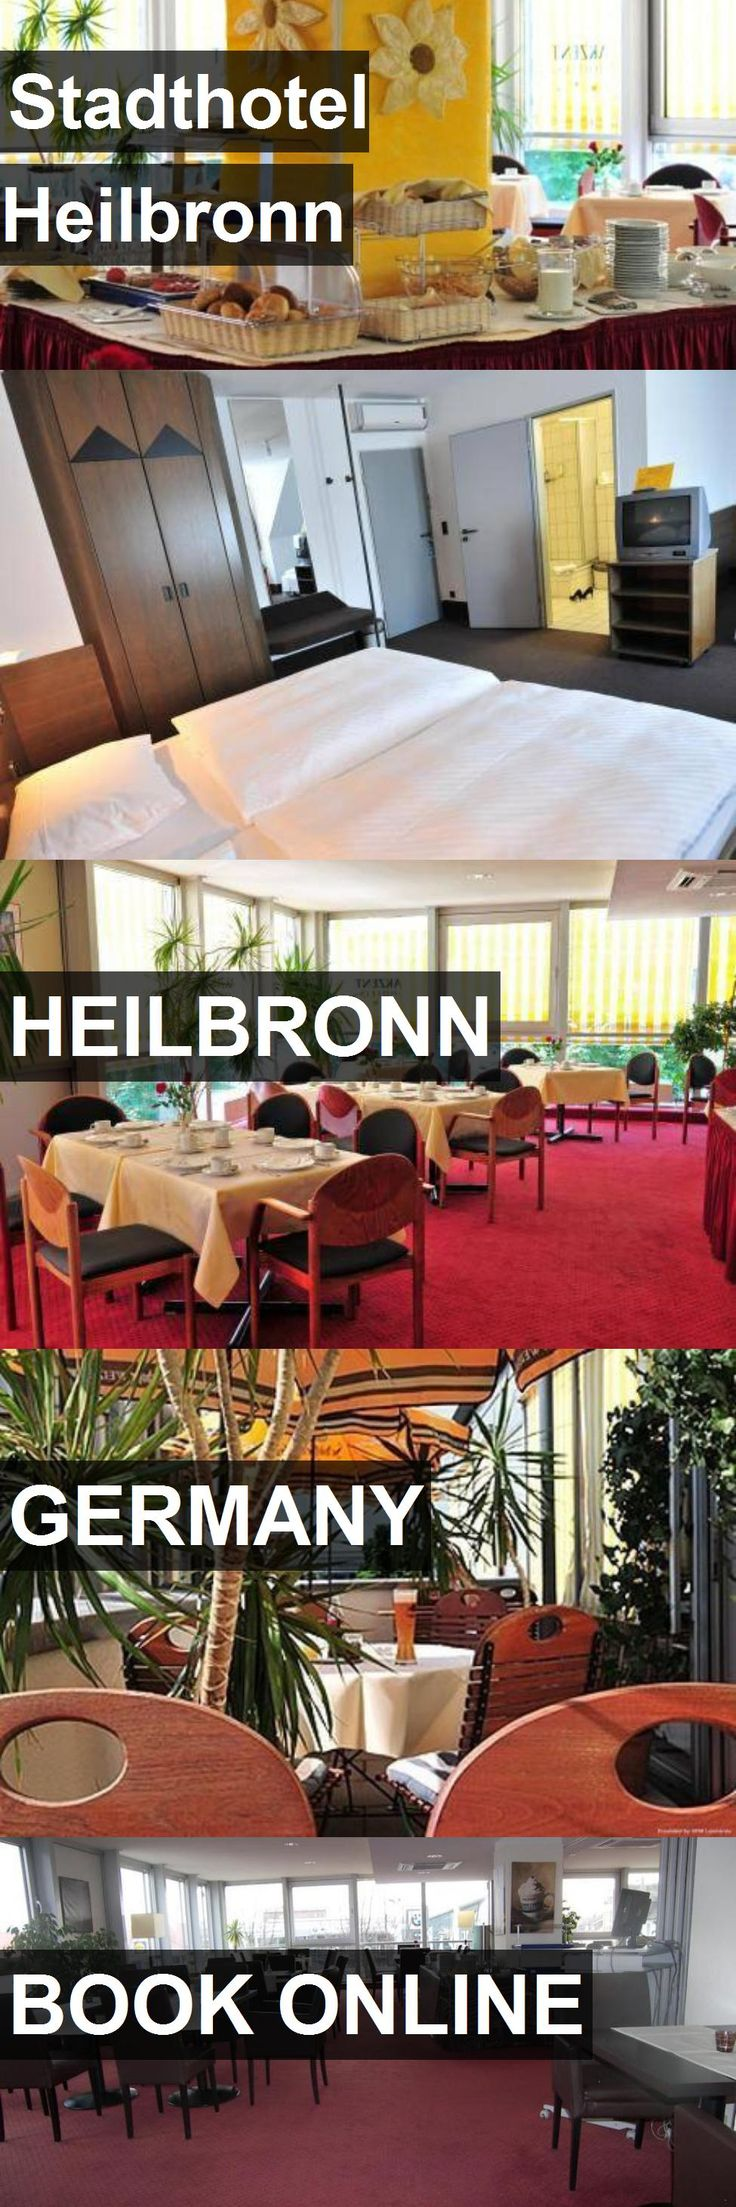 Stadthotel Heilbronn in Heilbronn, Germany. For more information, photos, reviews and best prices please follow the link. #Germany #Heilbronn #travel #vacation #hotel